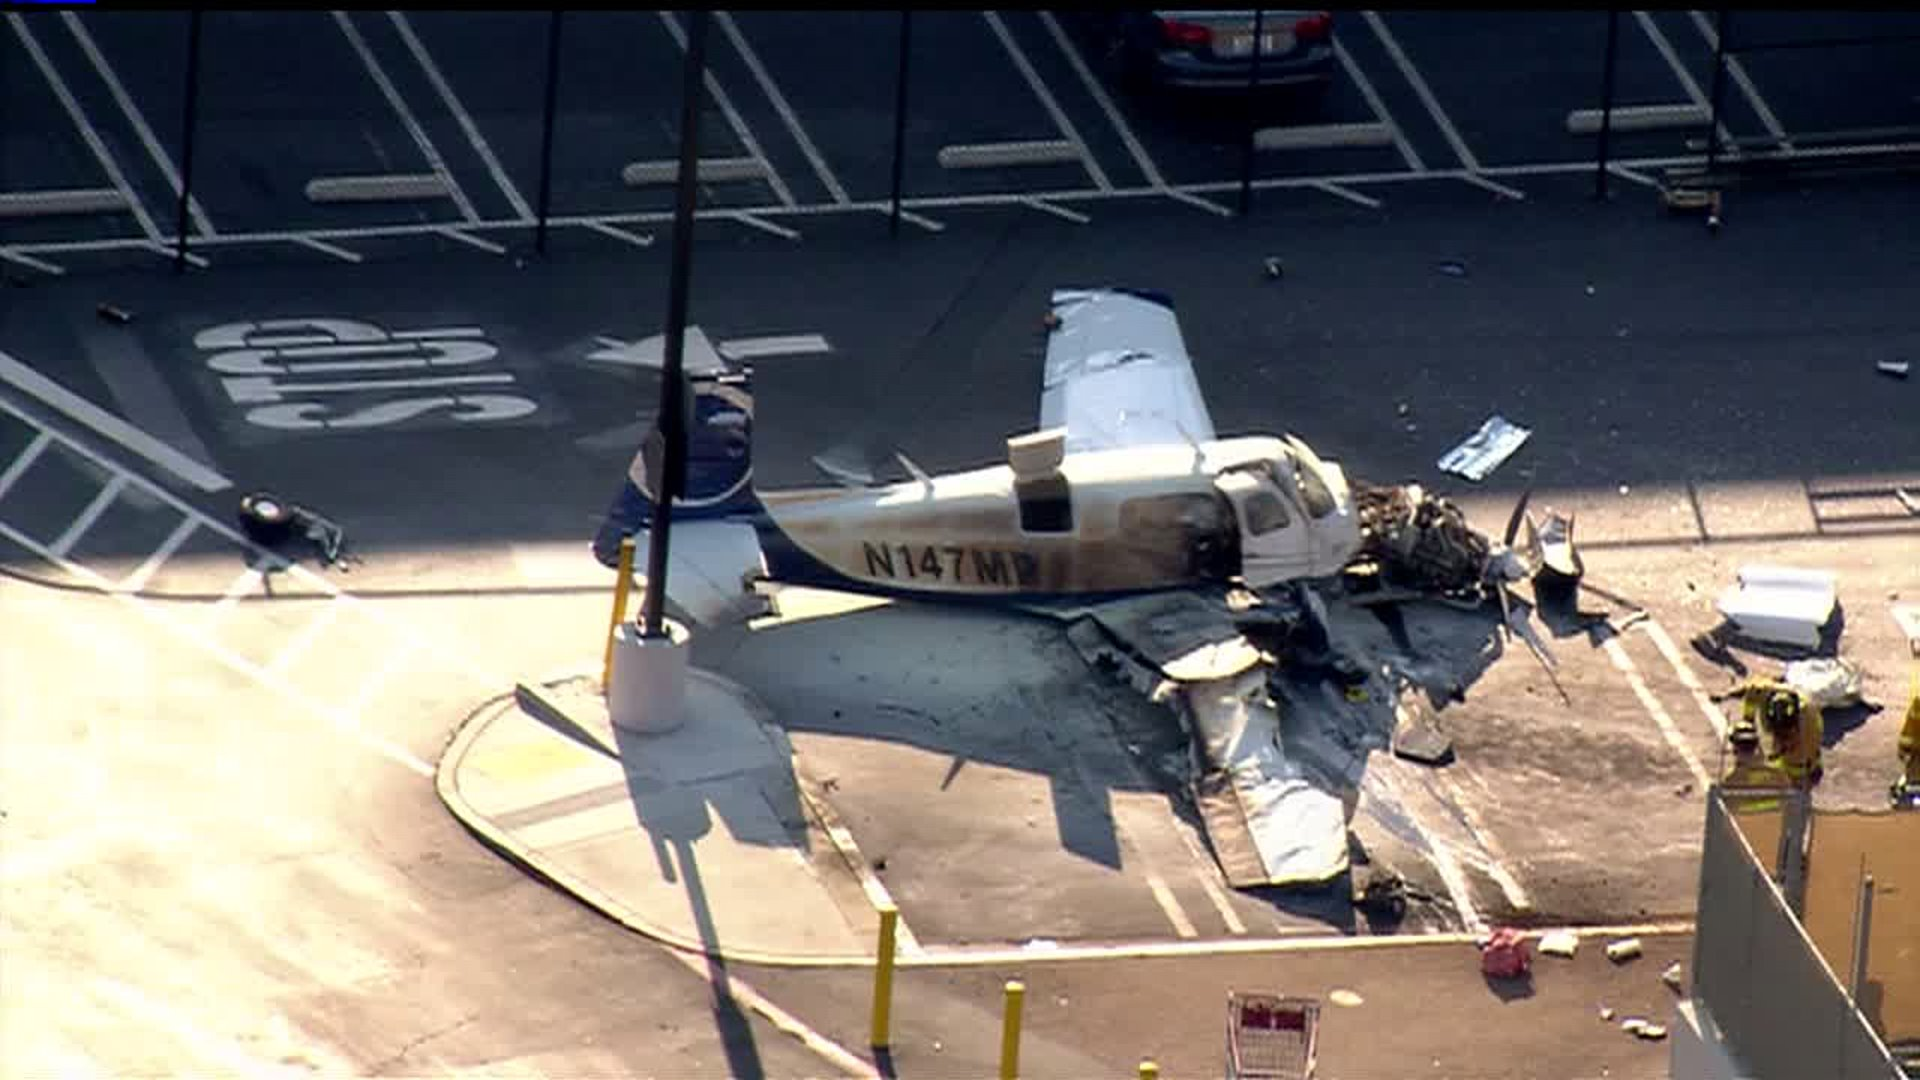 Plane crash at Costco parking